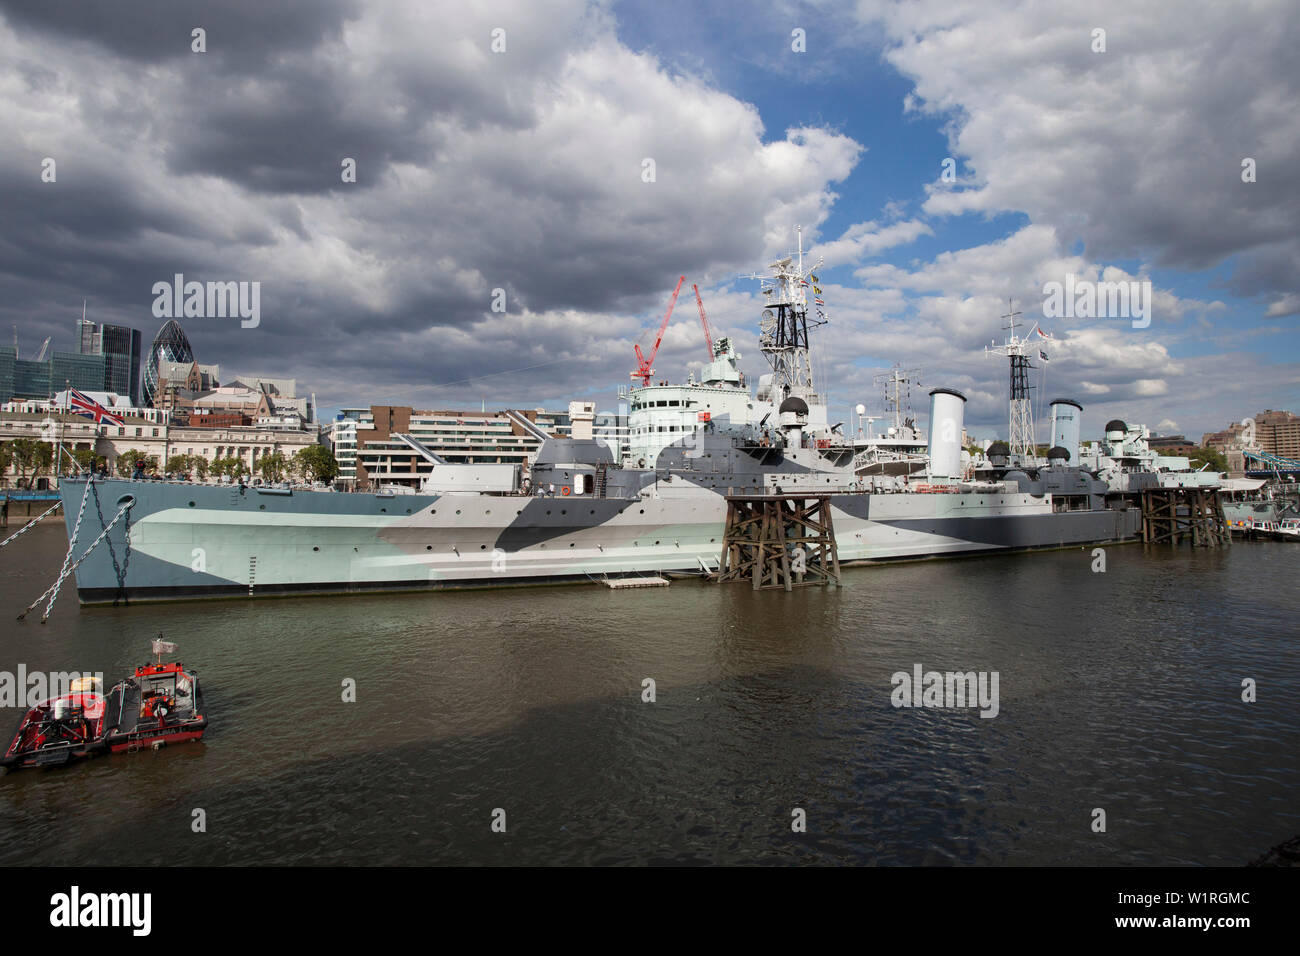 HMS Belfast, museum ship moored on the River Thames, London - Stock Image